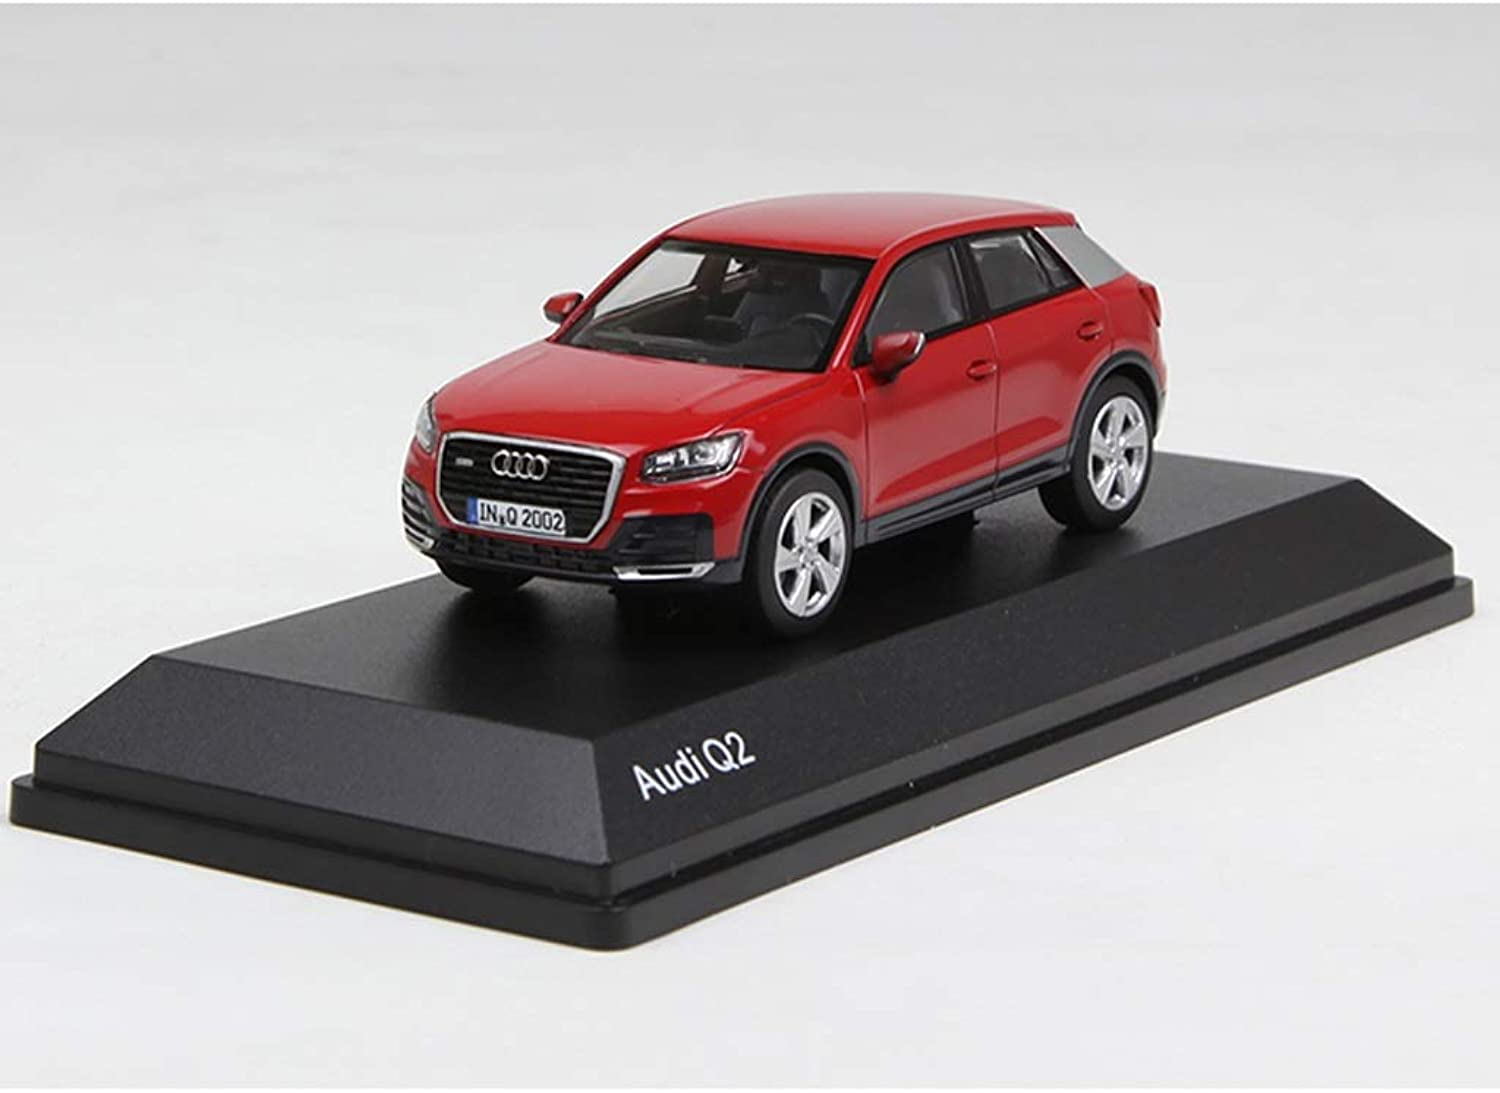 GAOQUNTOY 1 43 New Audi Q2 Alloy Car Model Decoration Collection Gift (color   Red, Size   9.7cm4.1cm3.5cm)